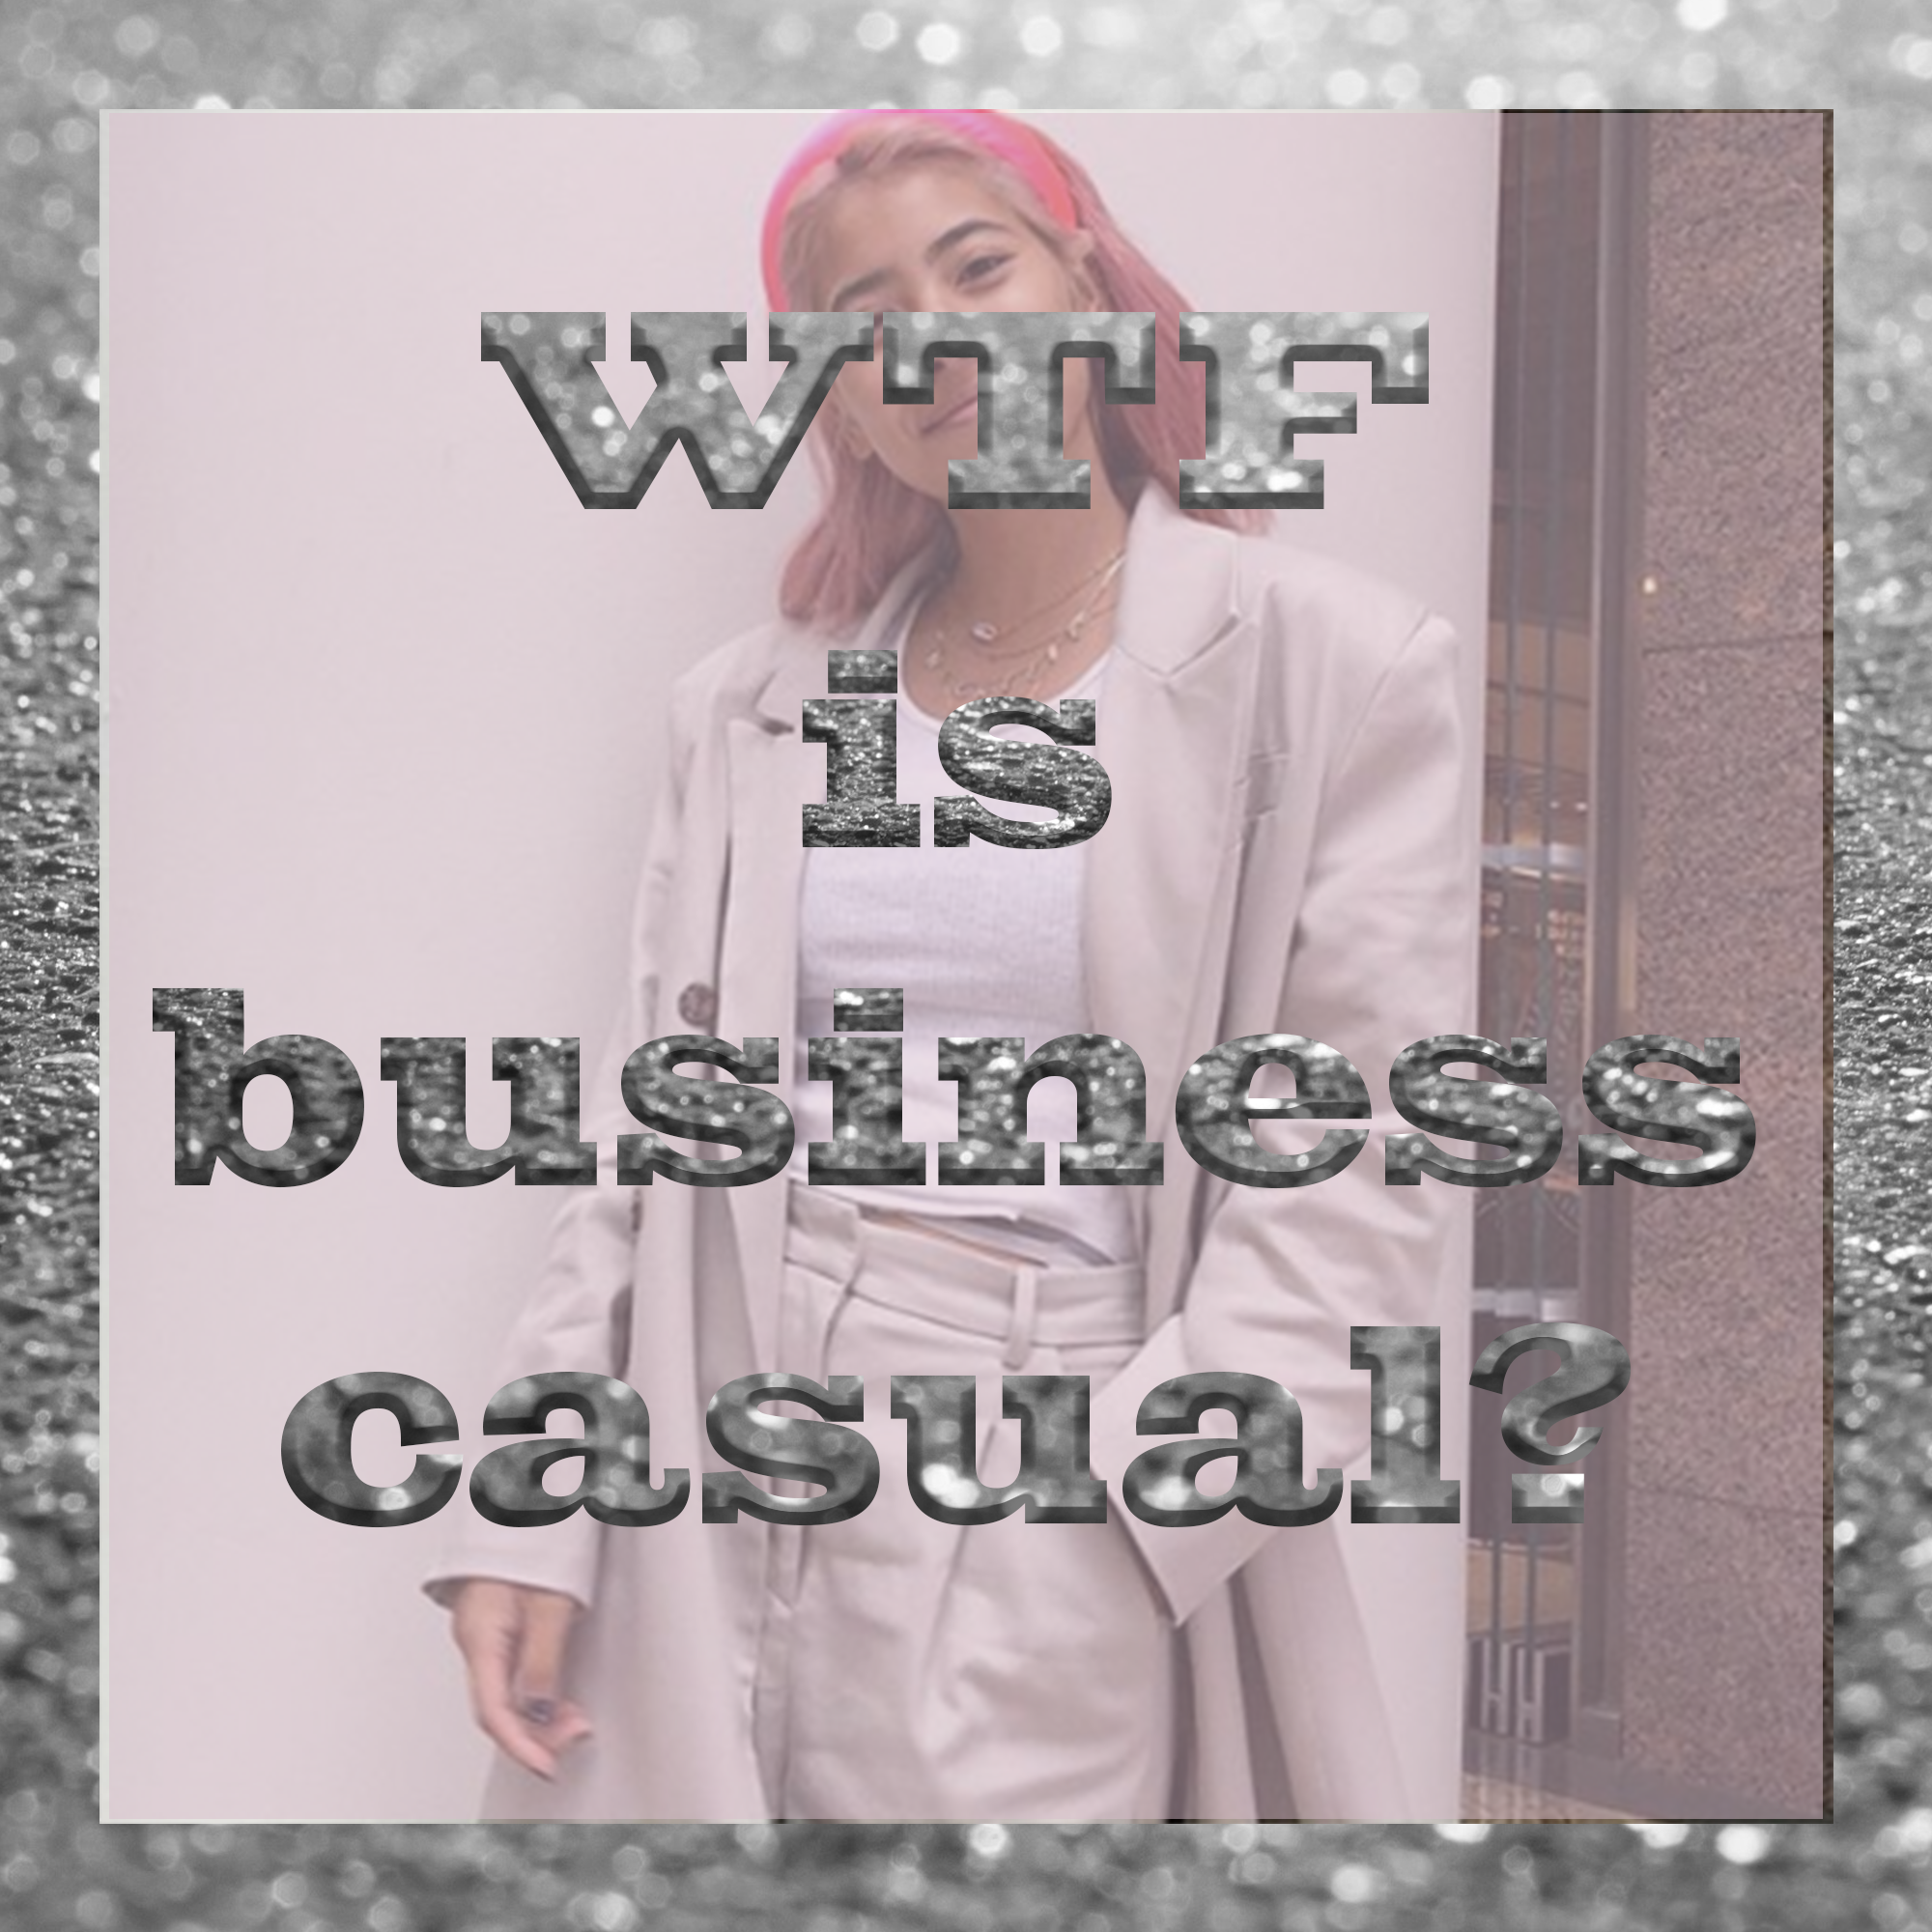 whatthefuckisbusinesscasual.png